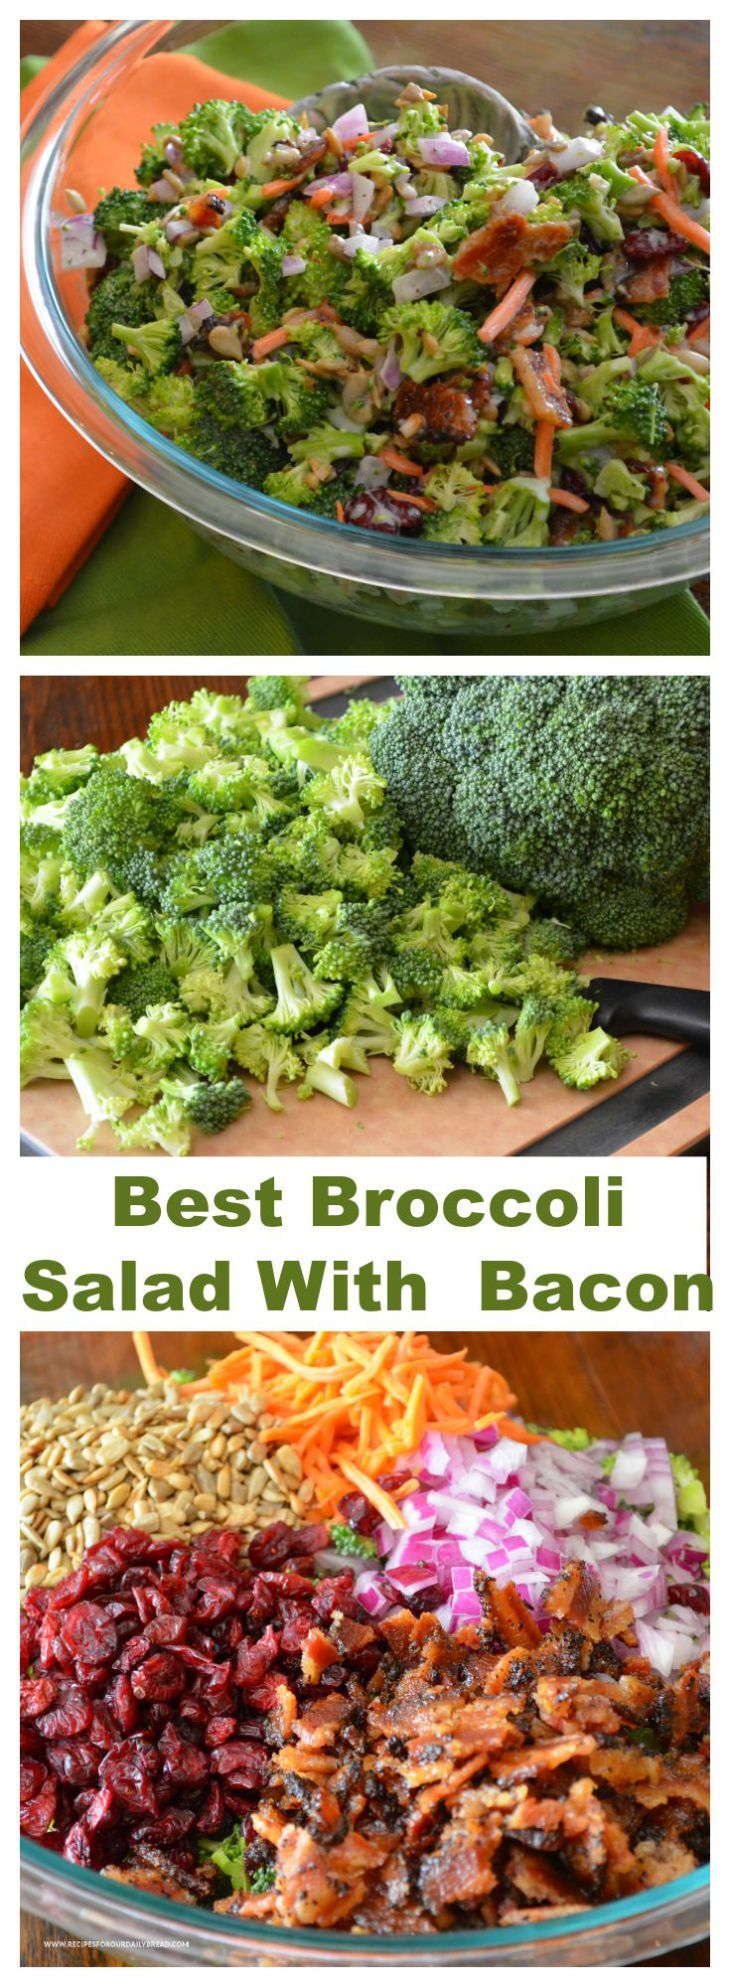 """Previous Pinner wrote: """"Broccoli Salad with Bacon Recipe - I have tried many Broccoli Salad with bacon recipes over the past 20 years, but this combination is my favorite."""""""